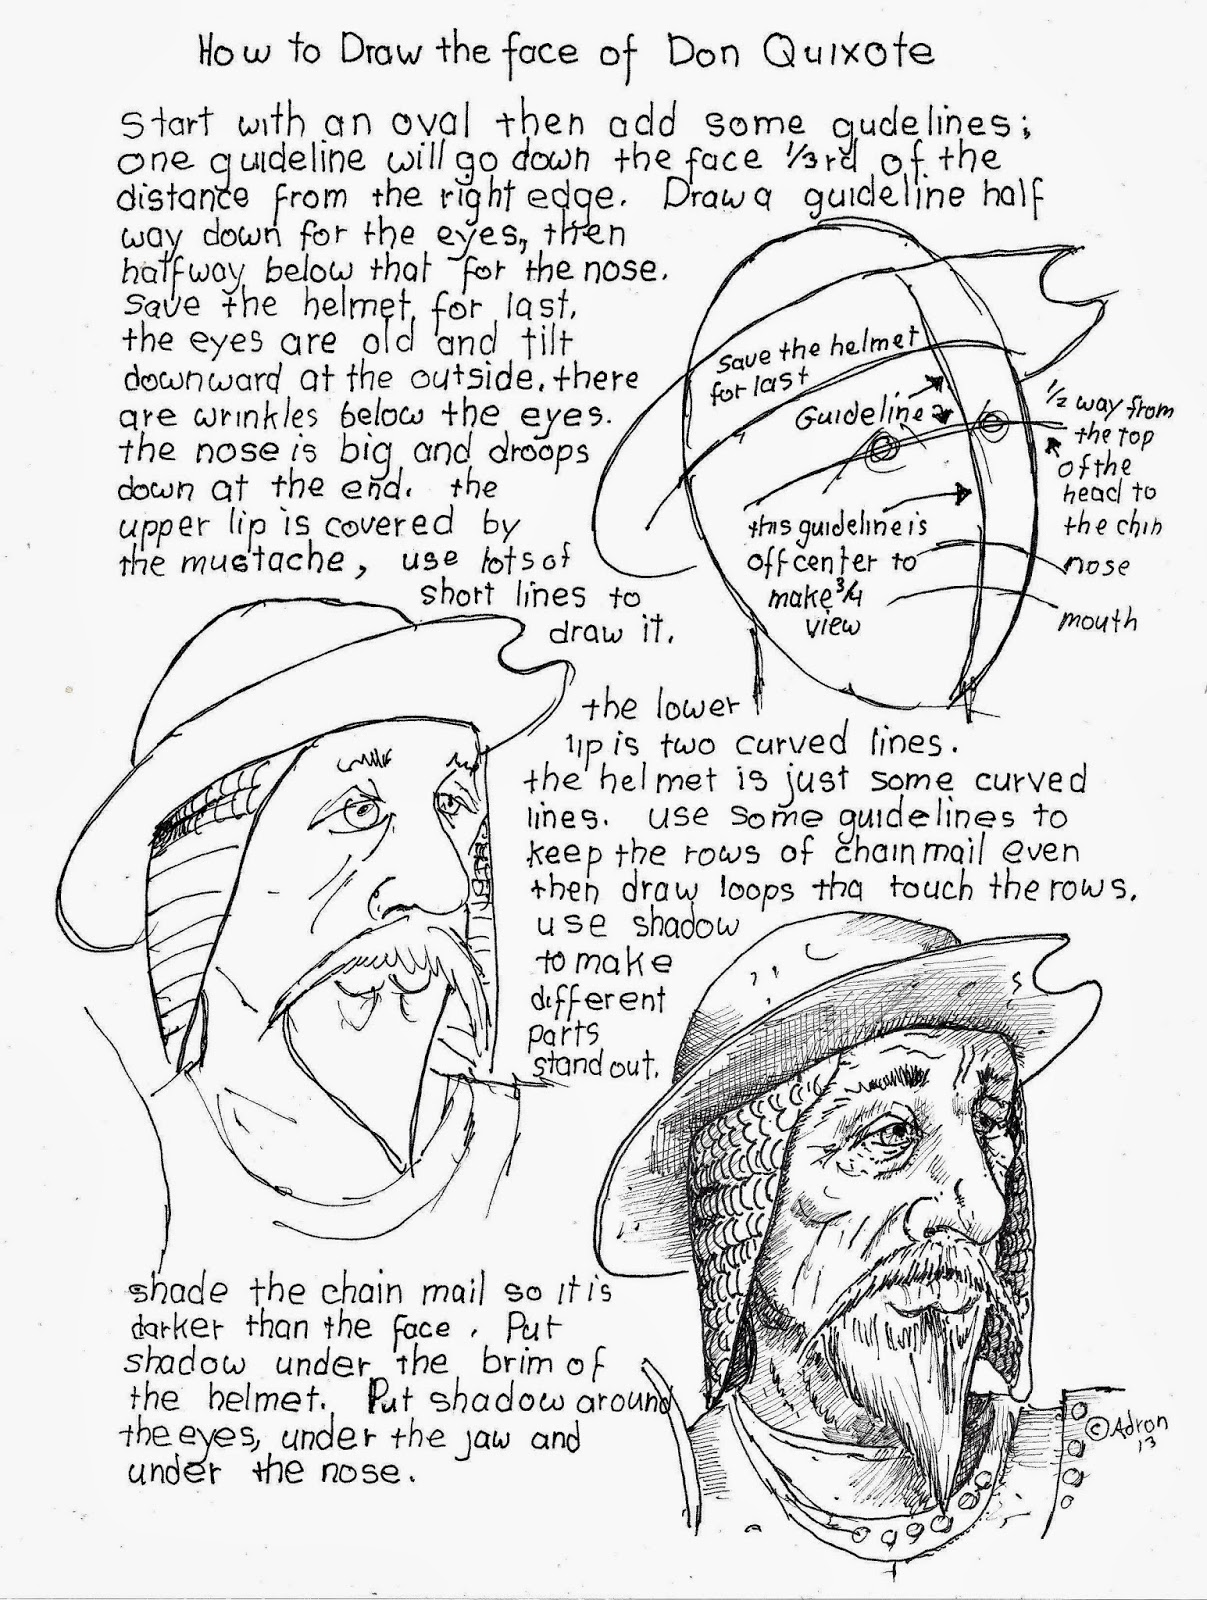 How To Draw Worksheets For The Young Artist How To Draw The Face Of Don Quixote Worksheet